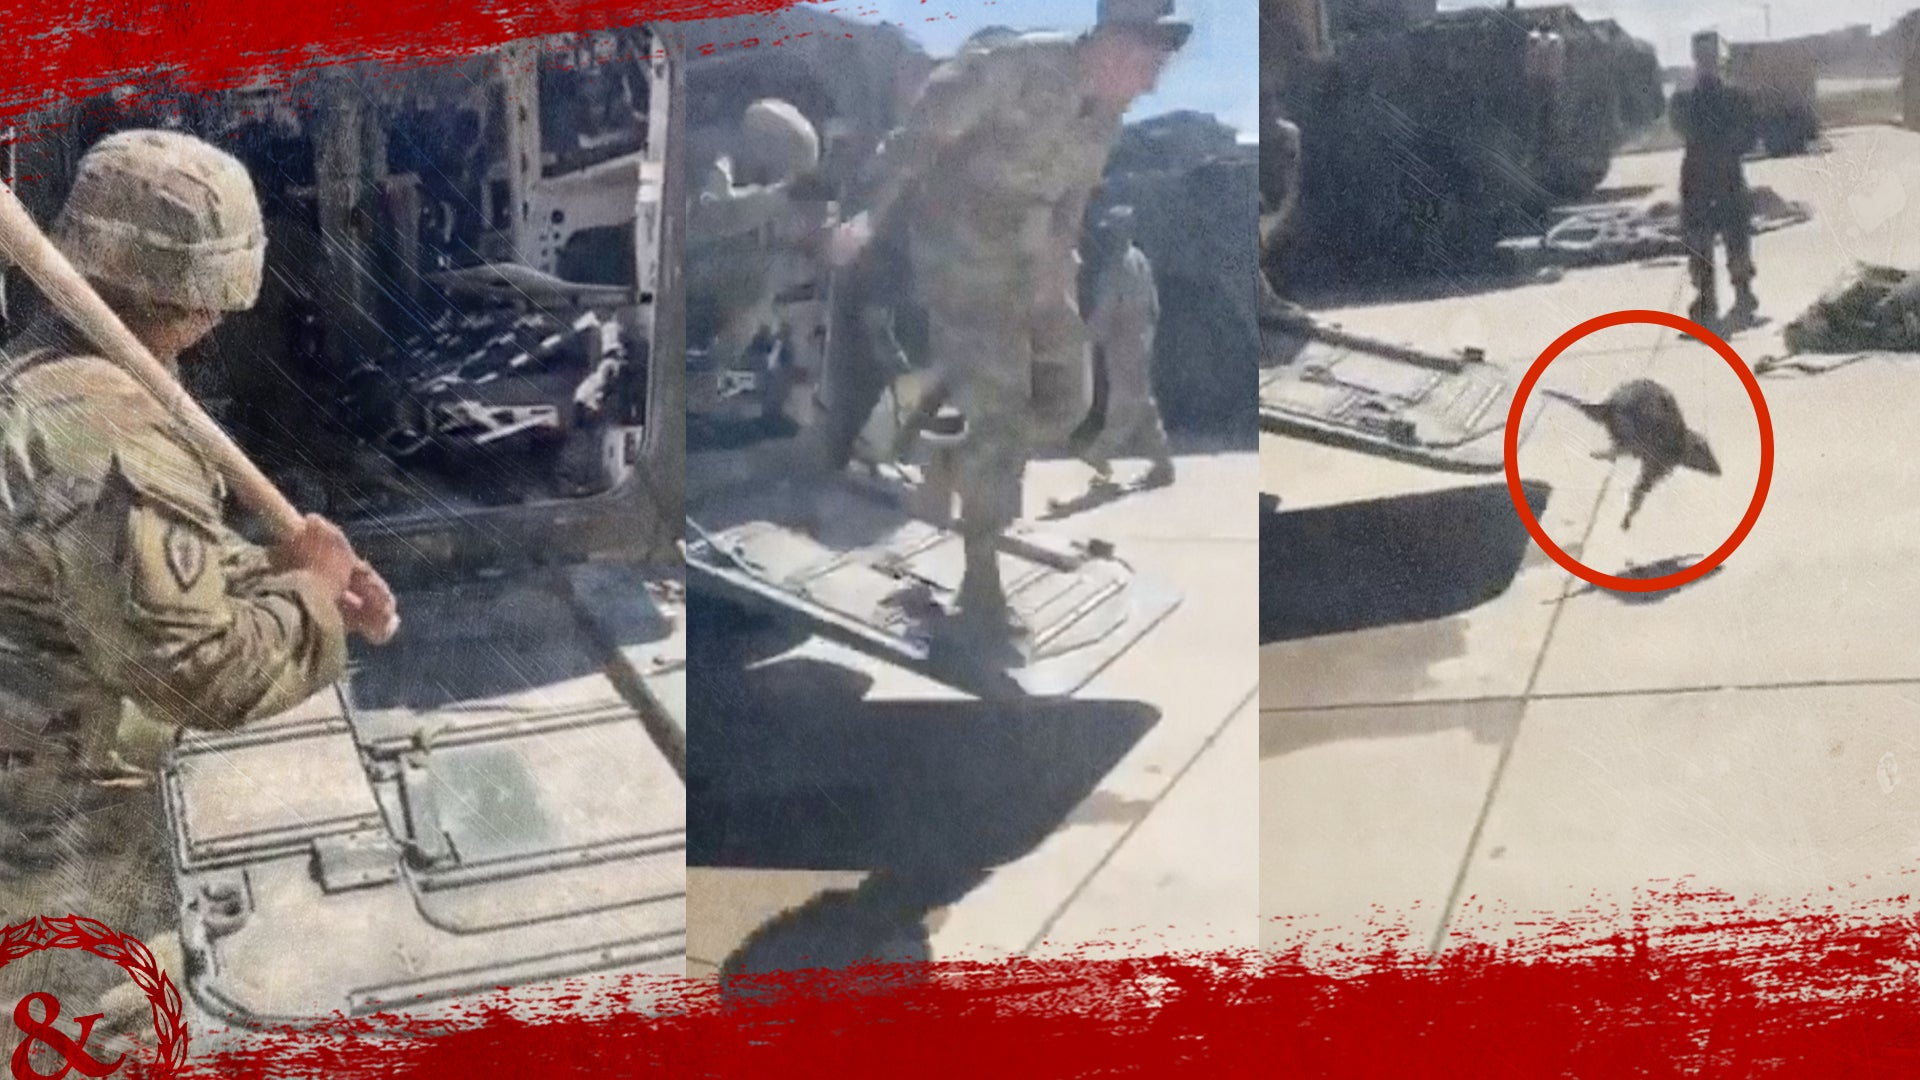 Watch these US soldiers retreat from the raccoon insurgent that commandeered their Stryker